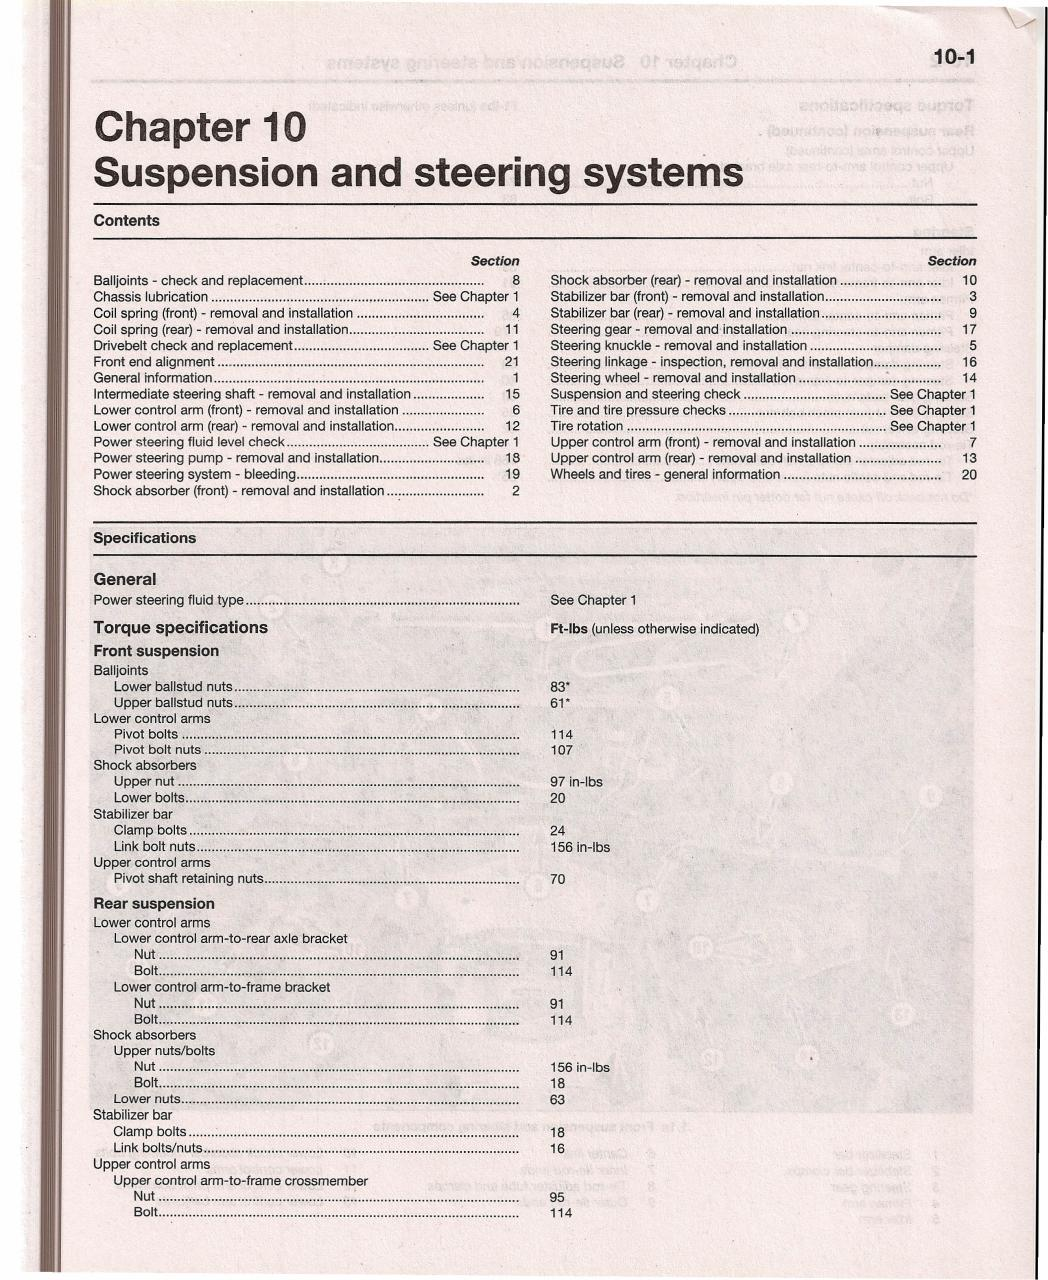 ch 10 suspension and steering0001.pdf - page 1/16